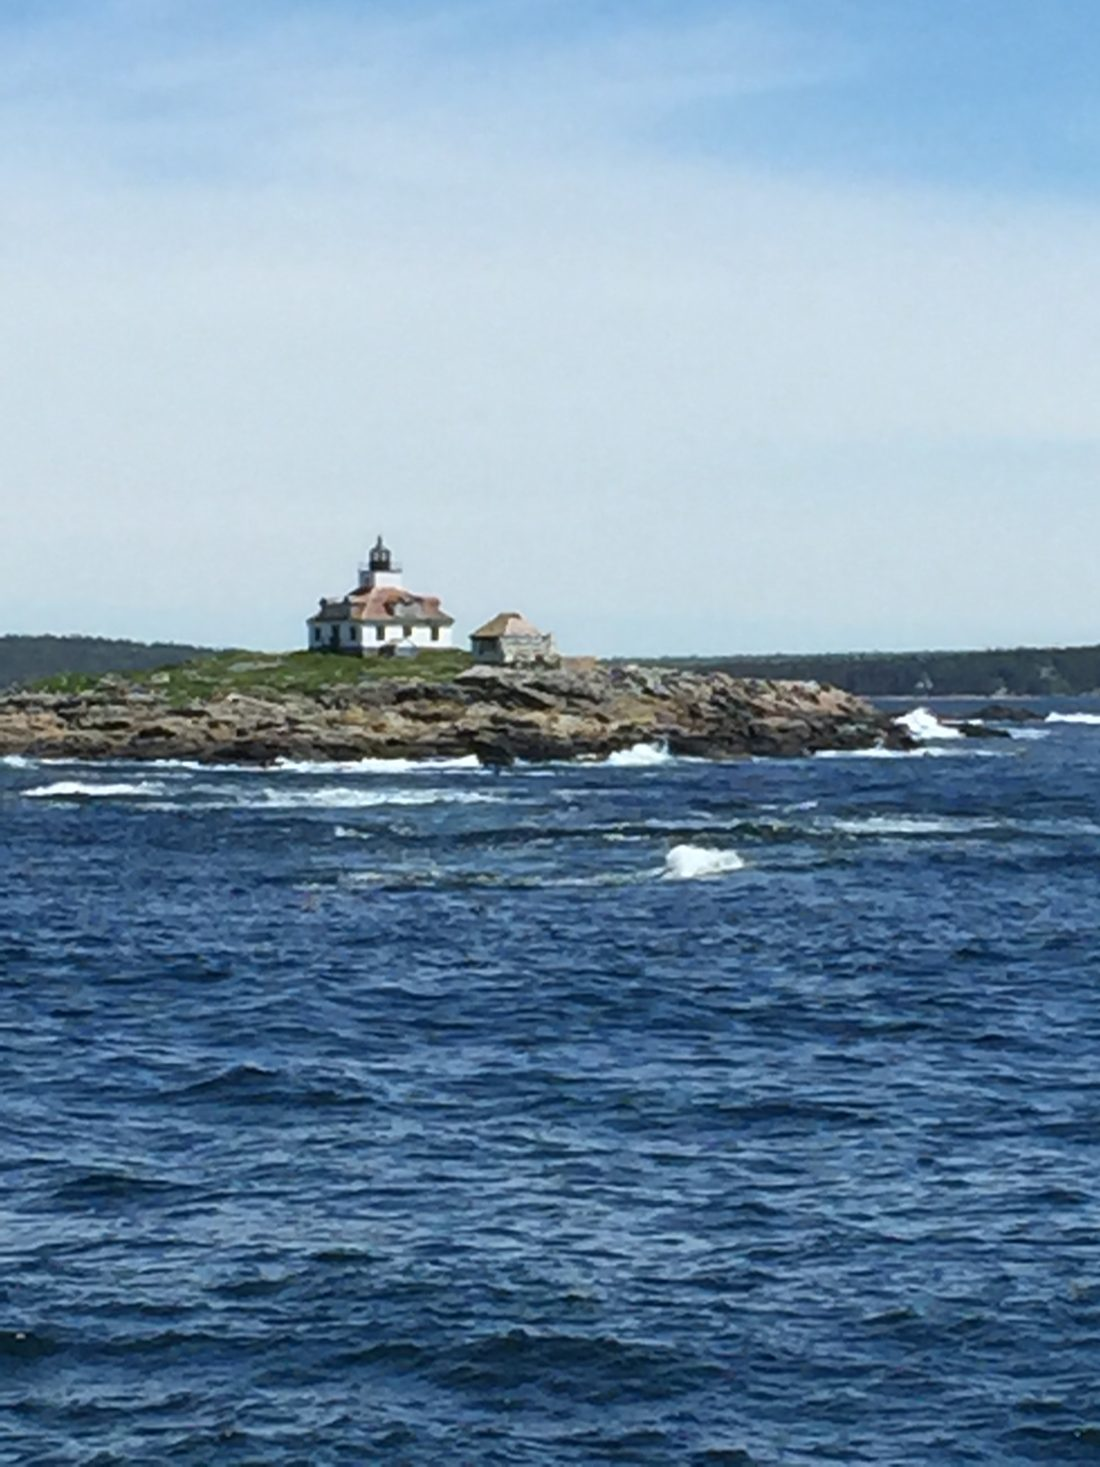 Road Trip Through Maine: Boat Tour and Pemaquid post #2